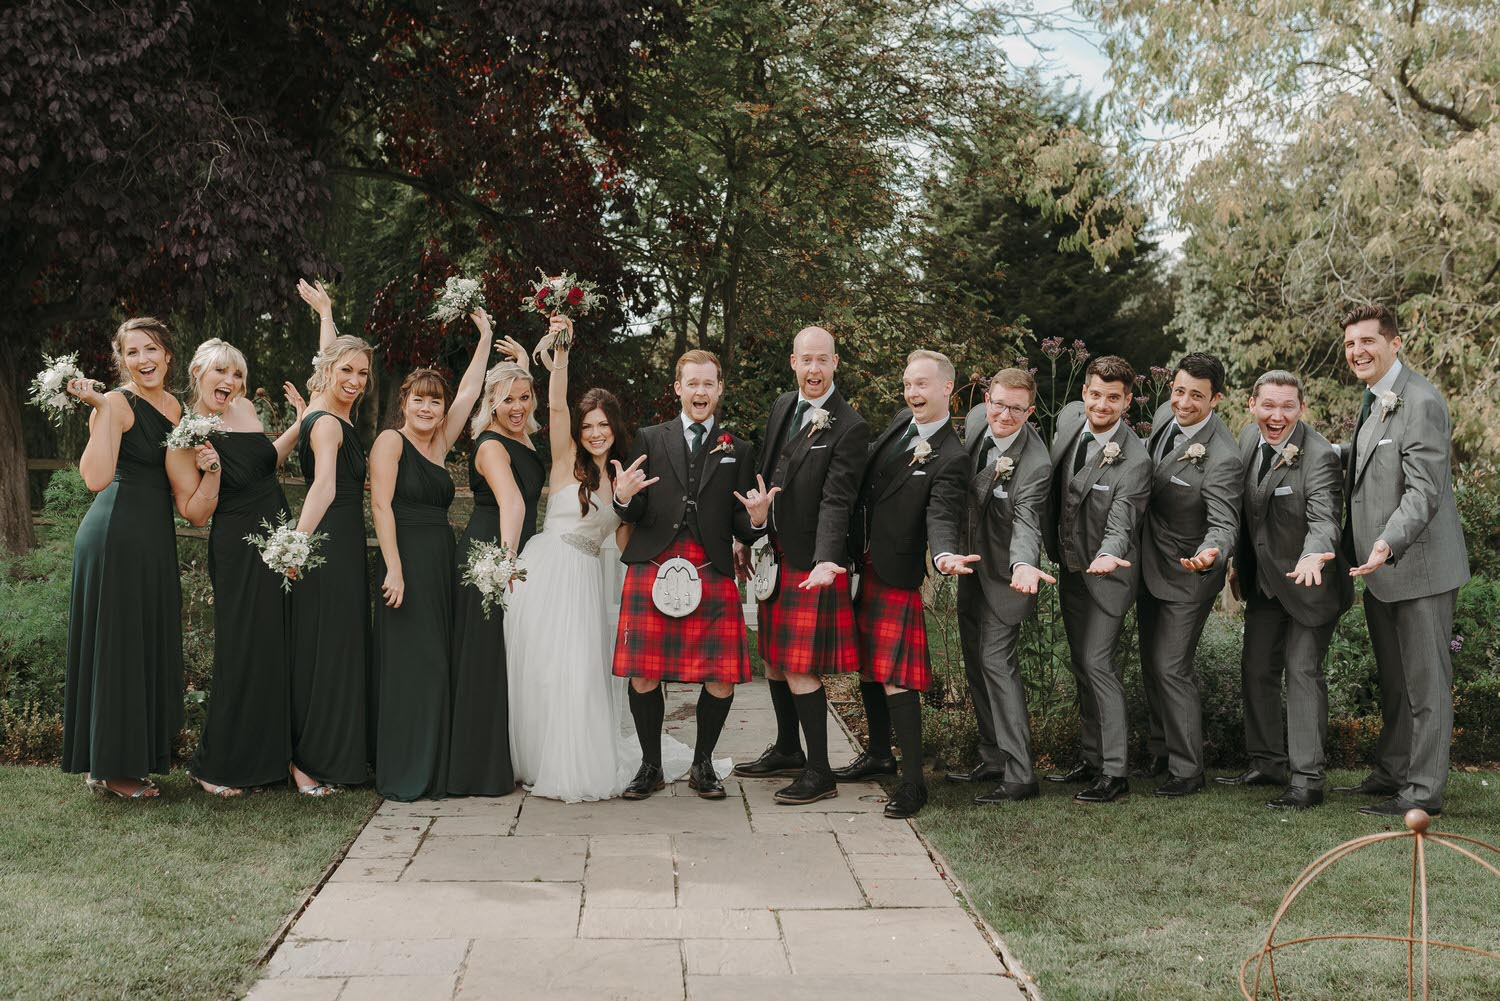 Image taken by Houchins wedding photographer of a wedding at Houchins wedding venue in Essex